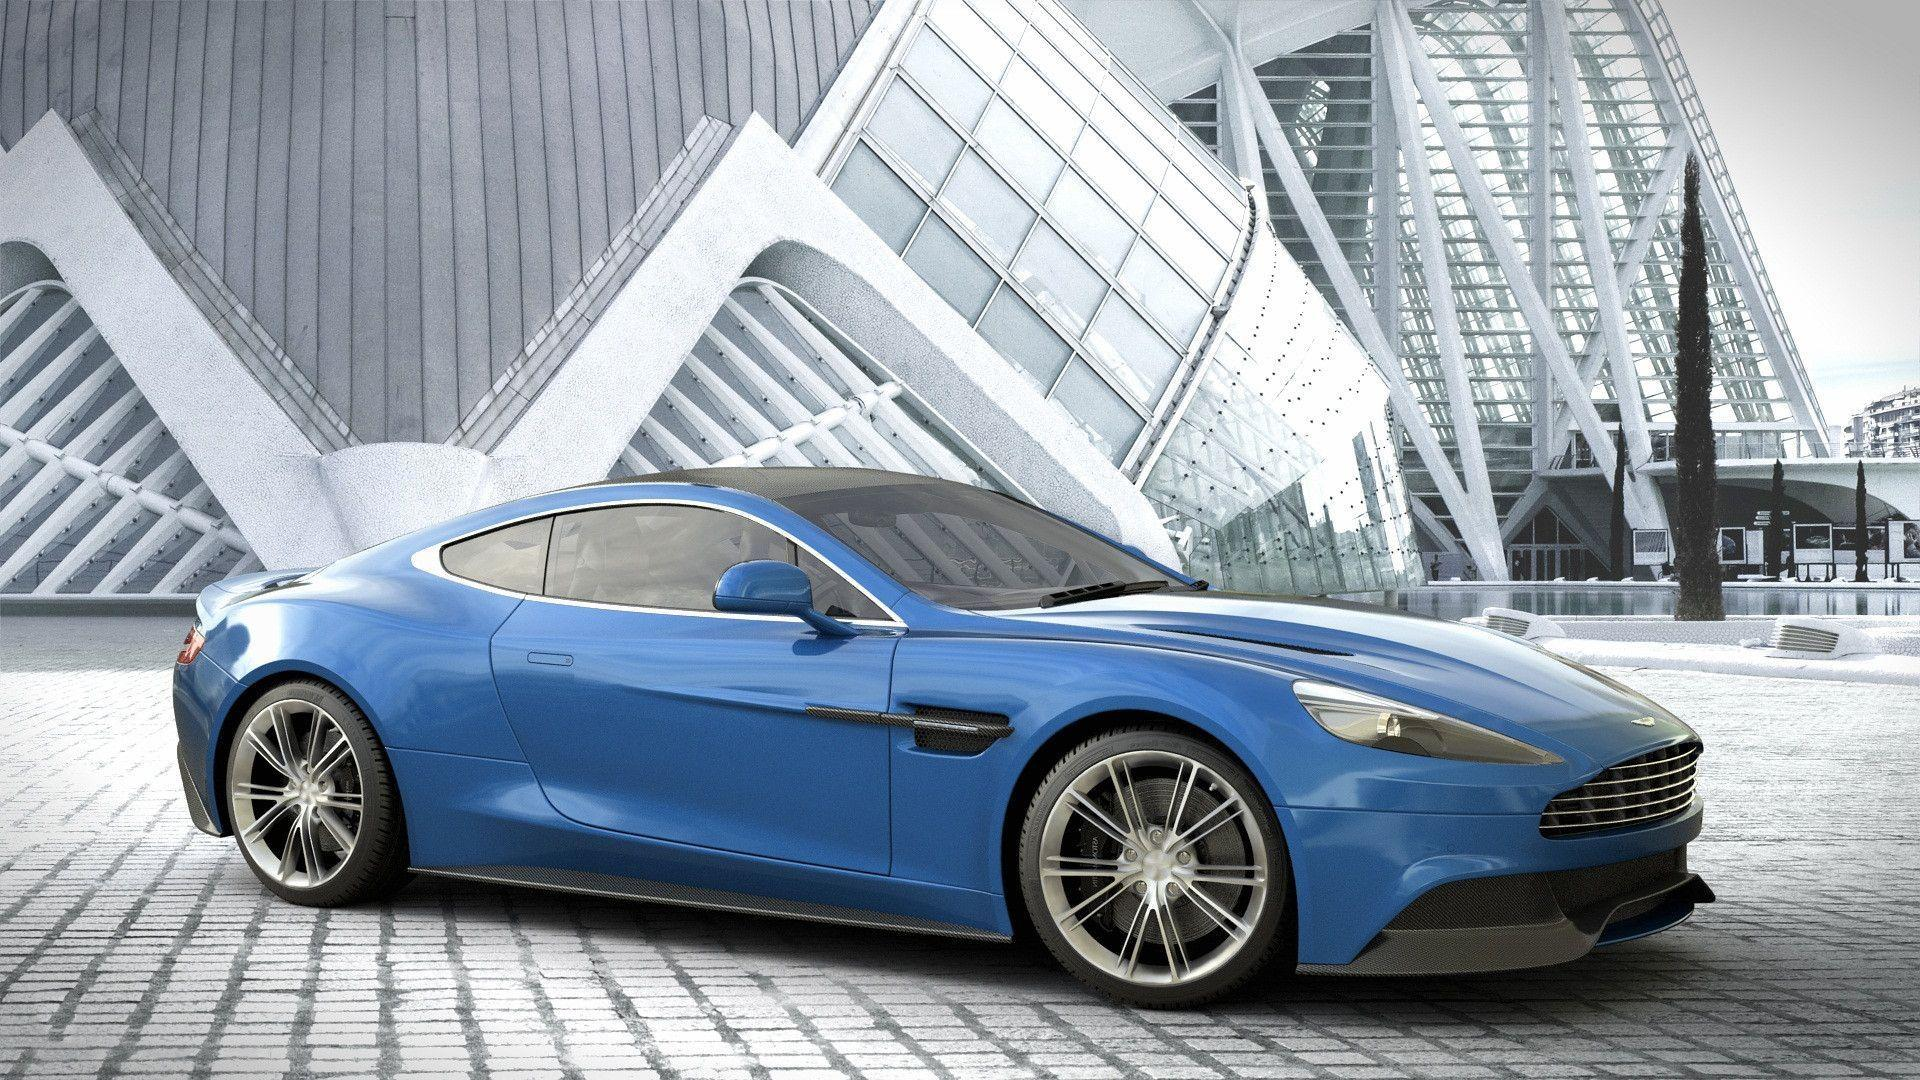 aston martin vanquish 2015 wallpapers wallpaper cave. Black Bedroom Furniture Sets. Home Design Ideas